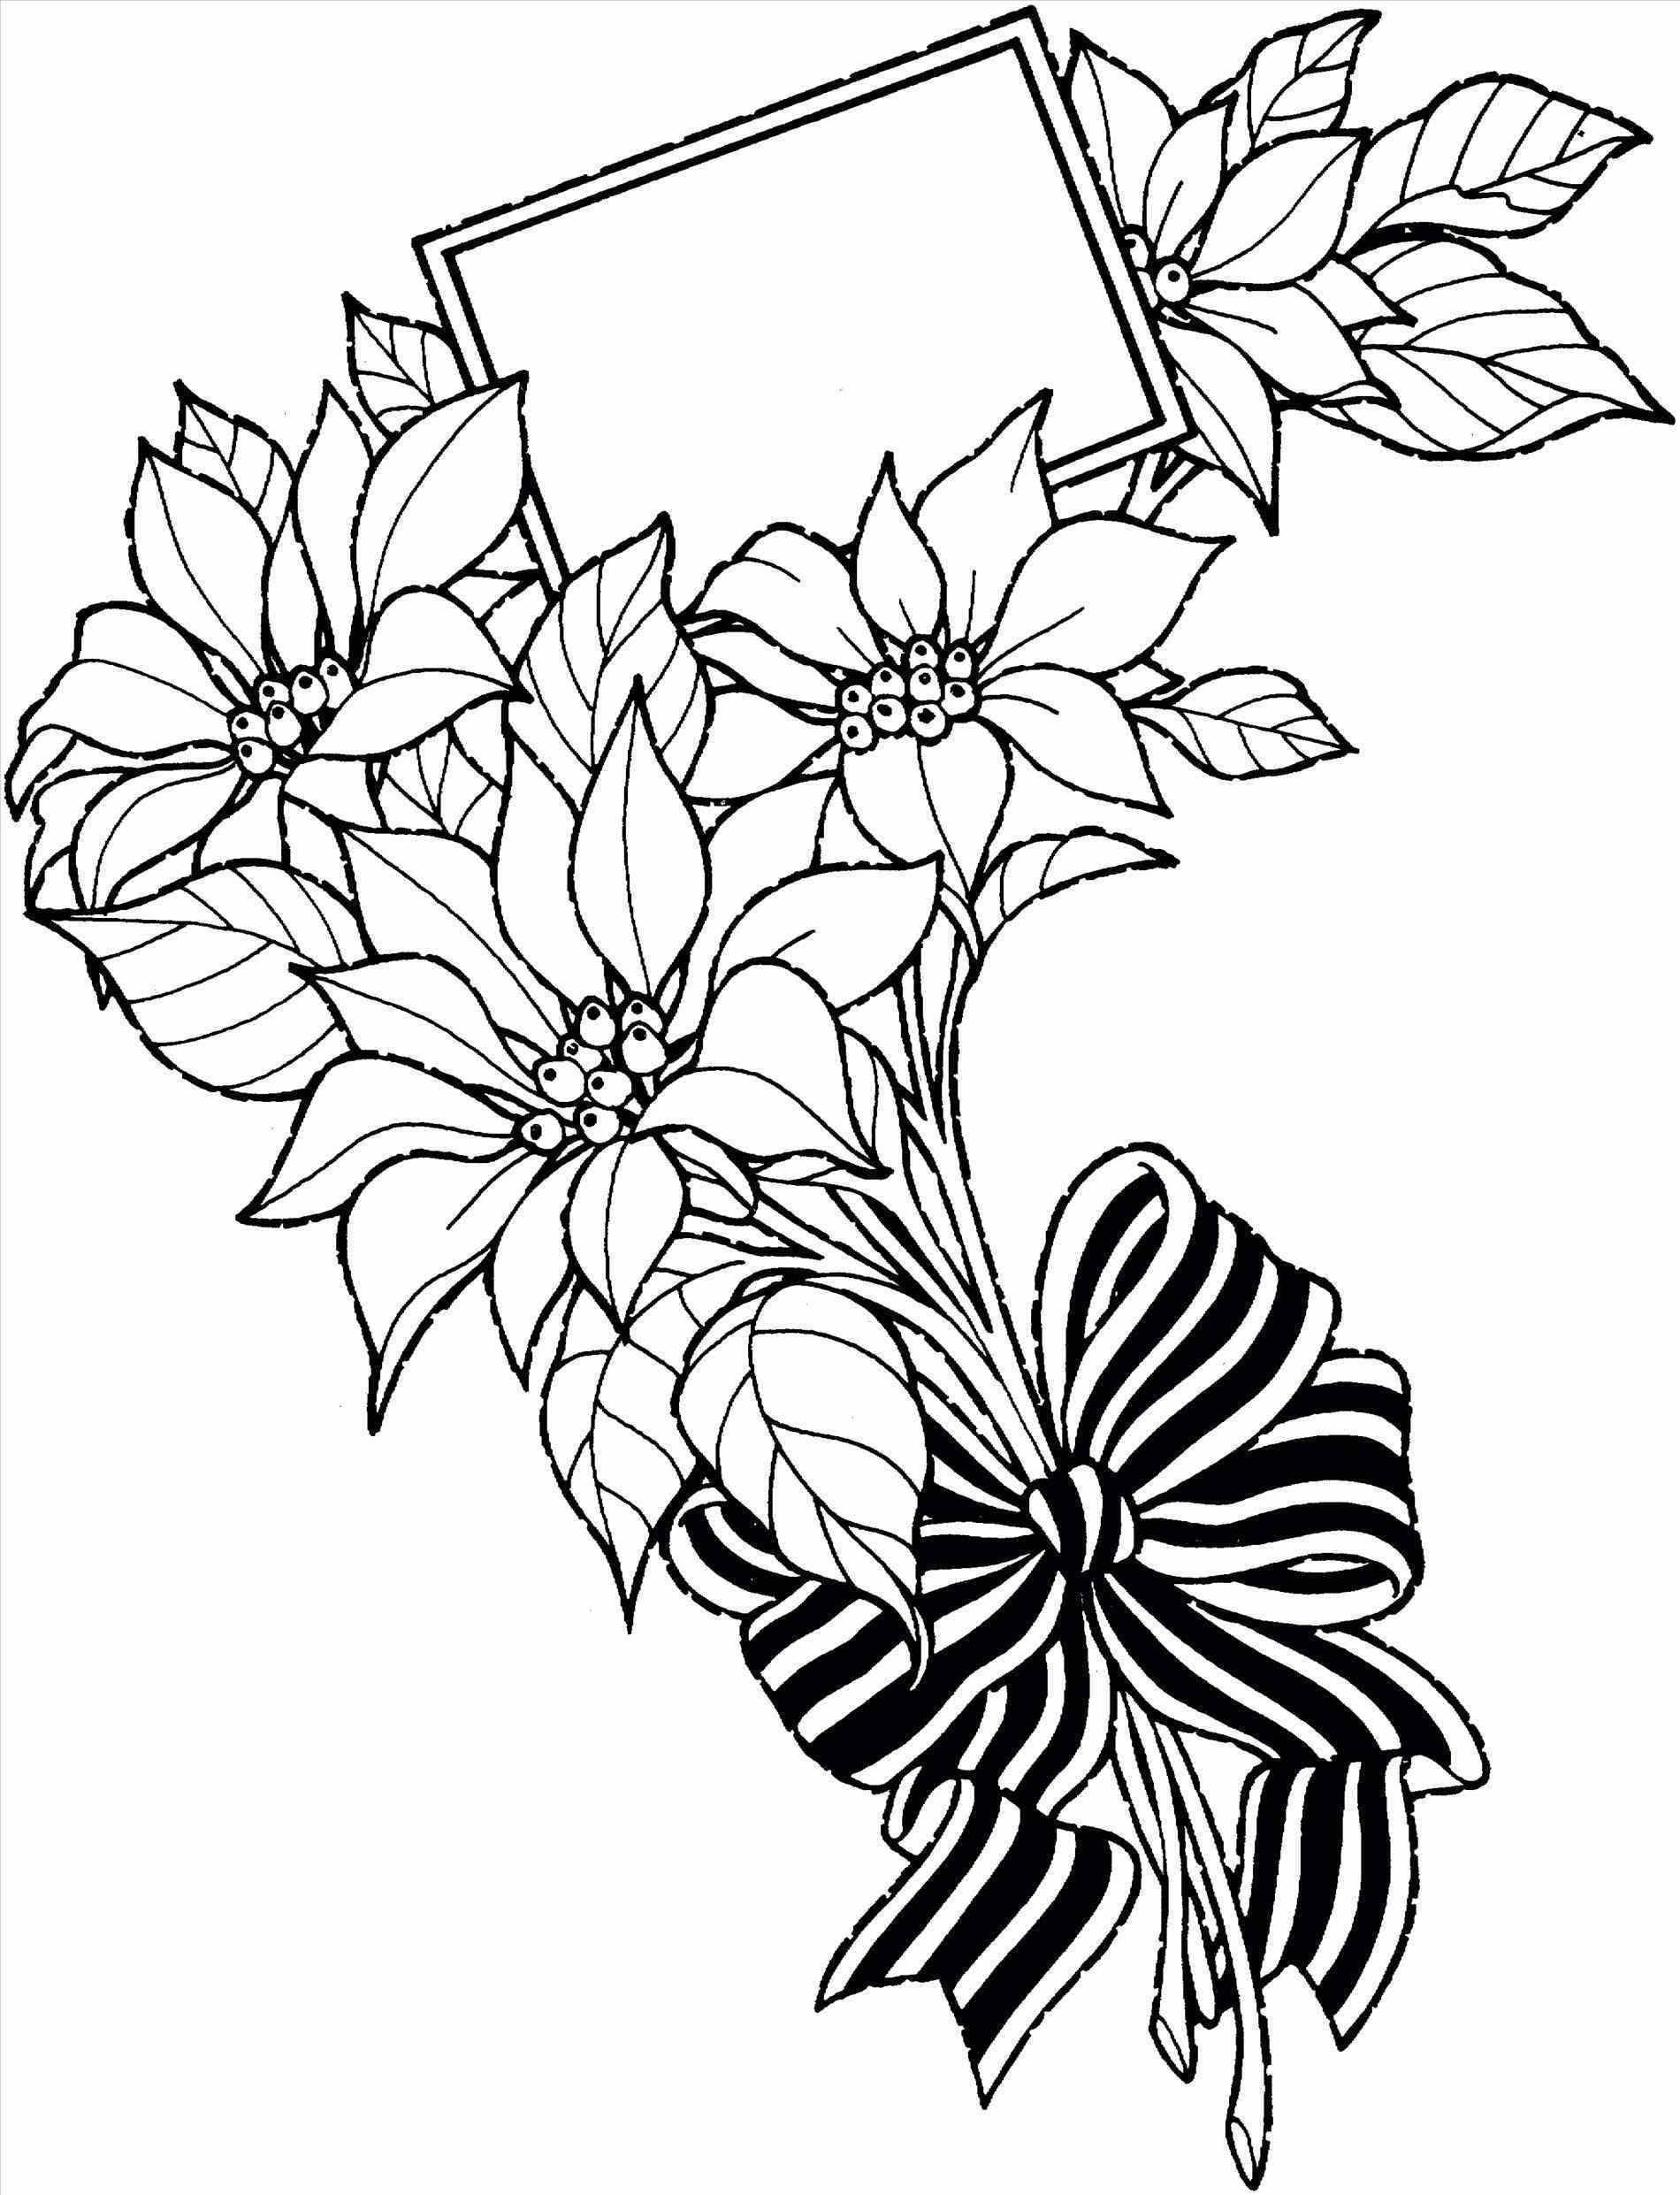 1900x2482 Birds How Black White Sketch Easy Flowers Drawings Tumblr To Draw